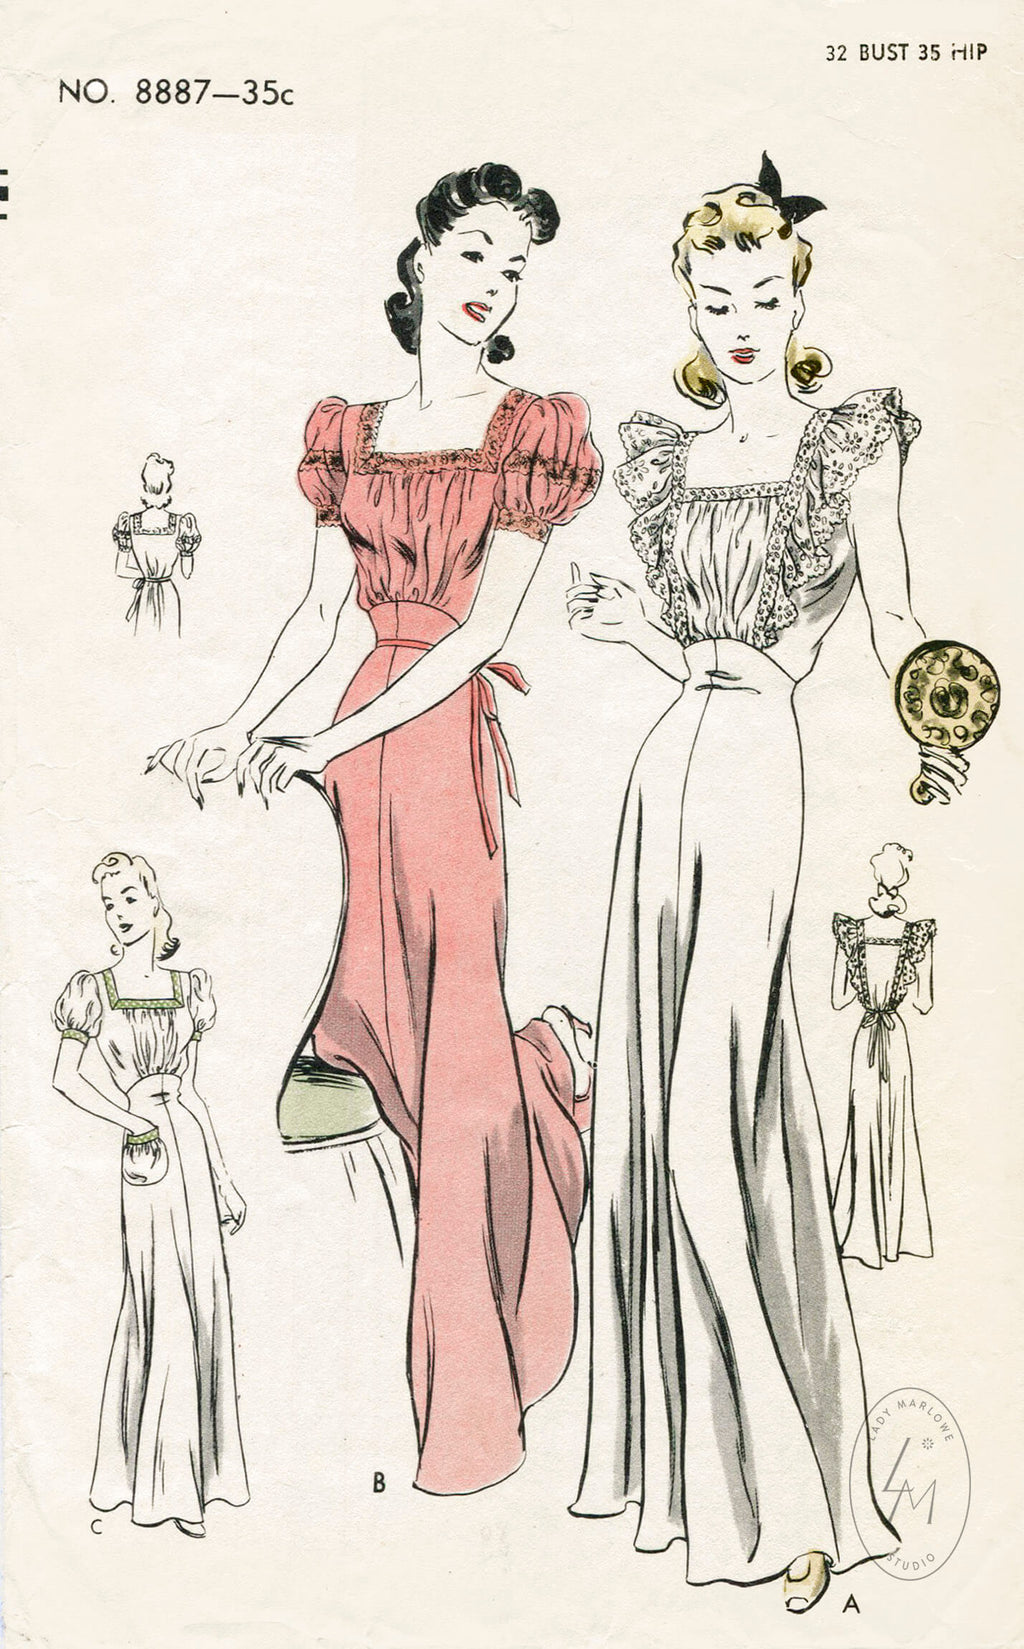 Vogue 887 1940s nightgown vintage lingerie sewing pattern